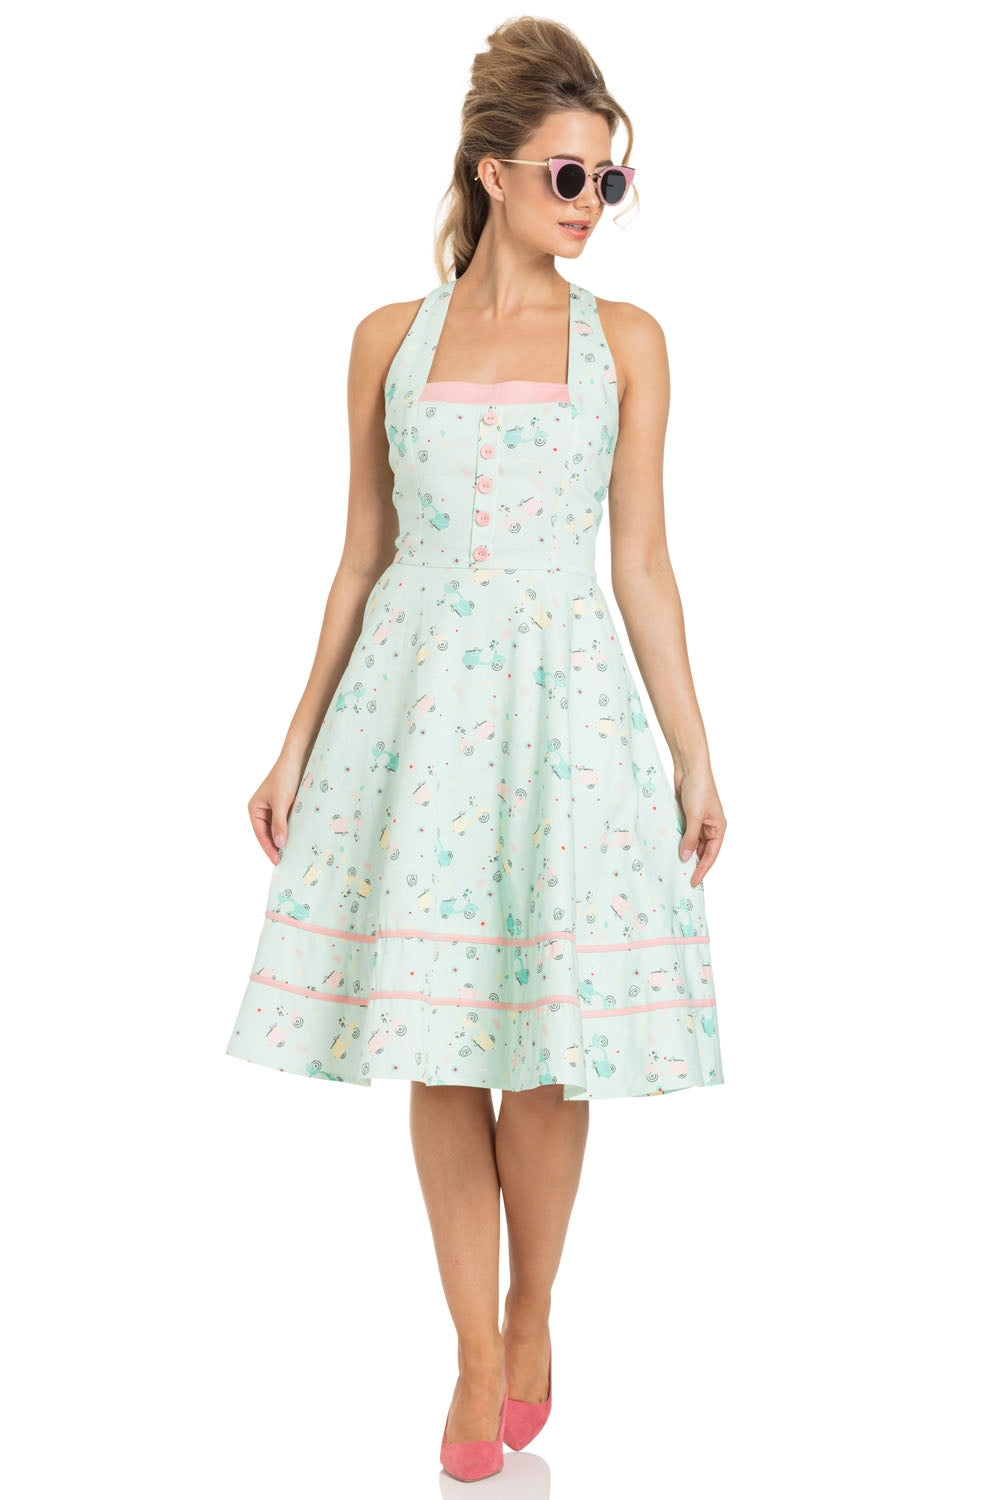 Eva retro scooter print flared dress by Voodoo Vixen